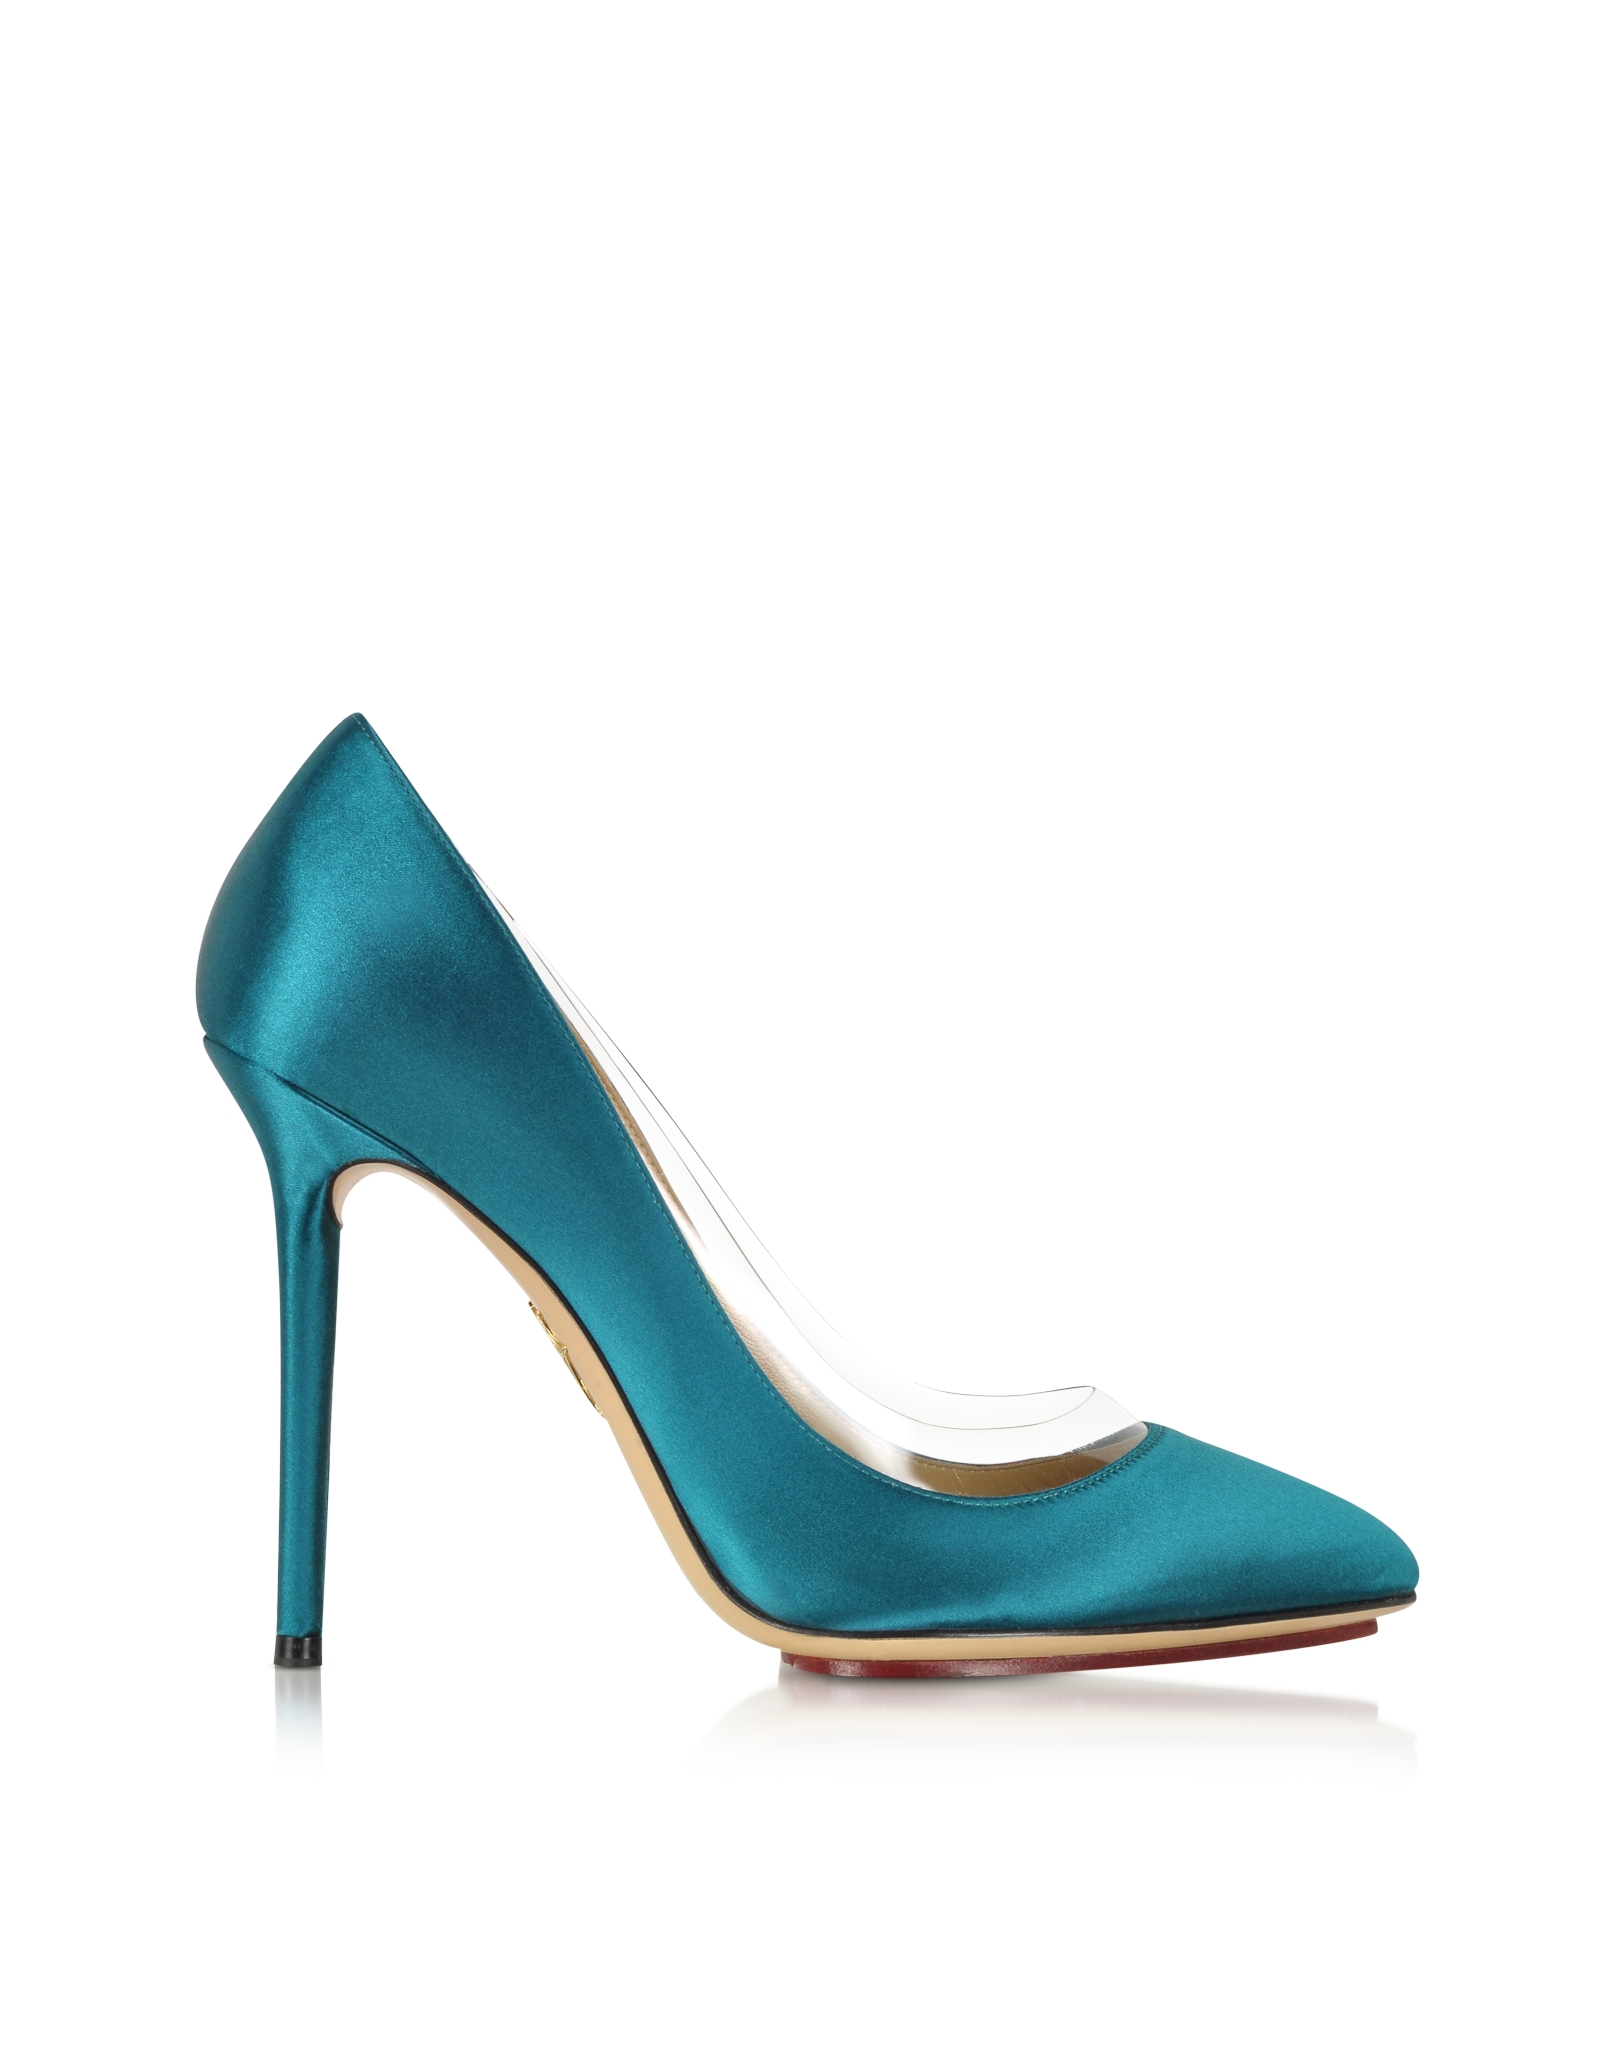 Lyst - Charlotte Olympia Party Shoes 110 Teal Blue Satin Silk   Pvc ... 3c91bbb53c52